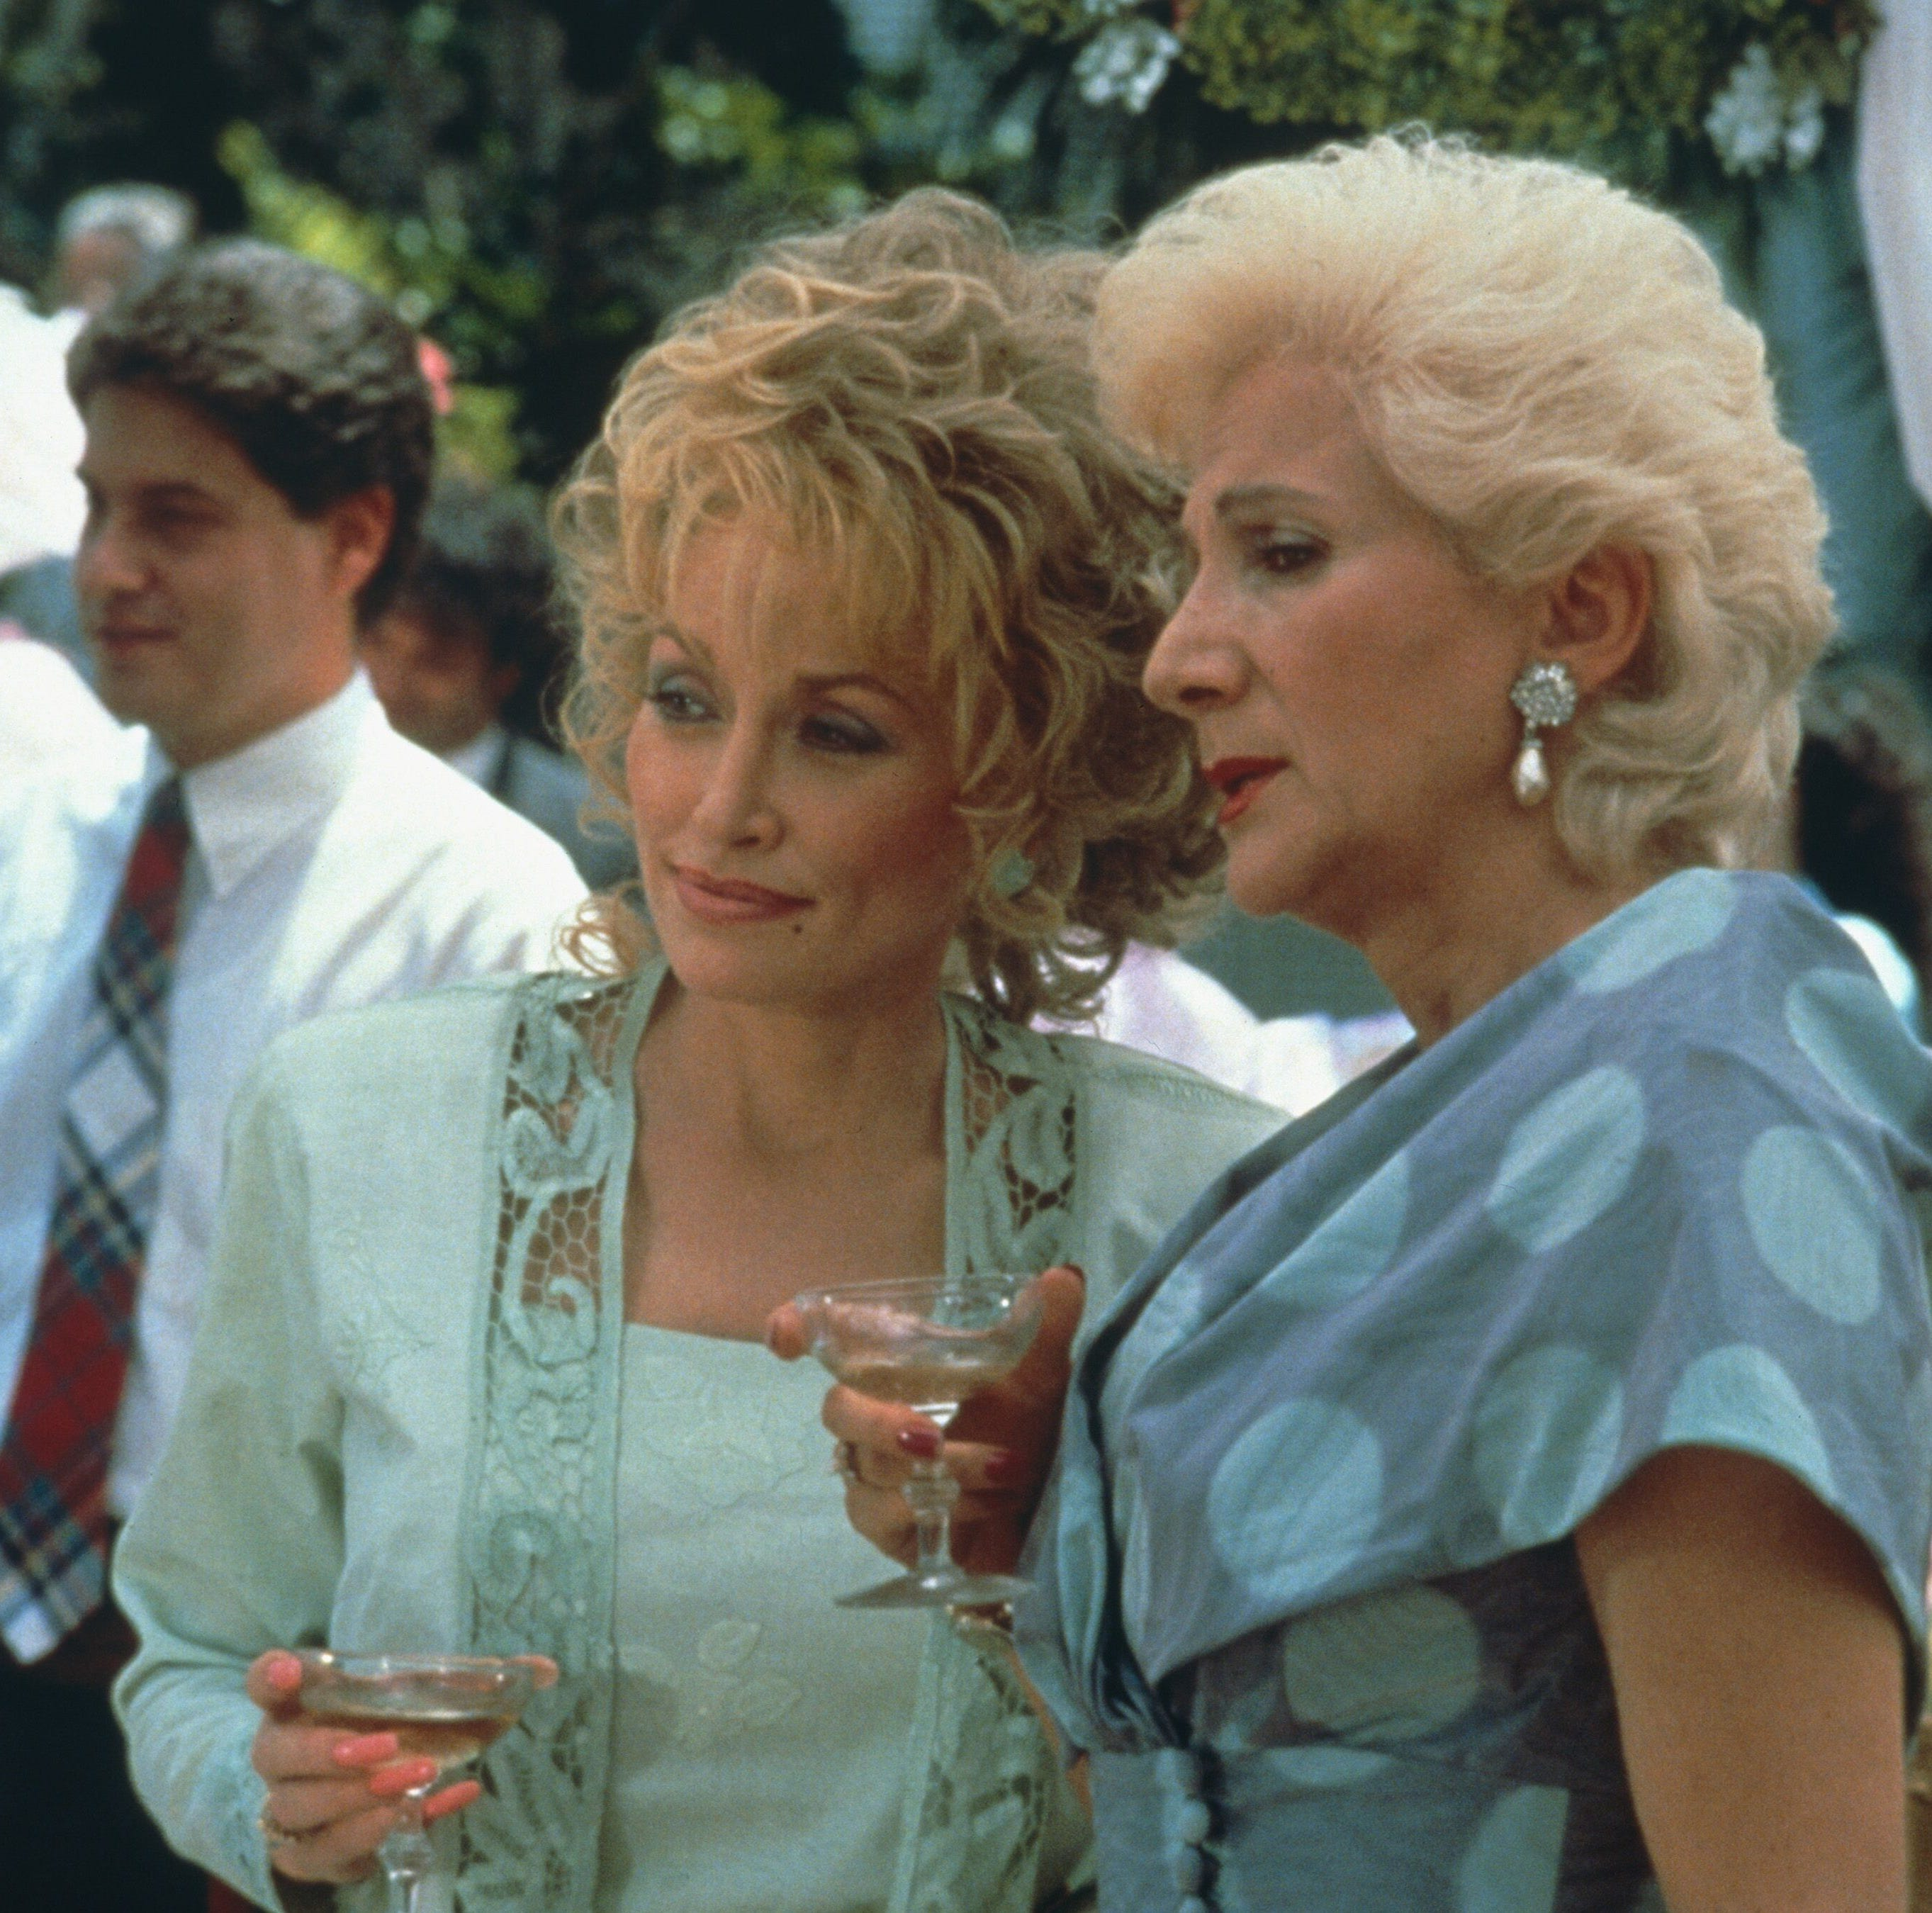 Girls night out? 'Steel Magnolias' returns to theaters for 30th anniversary